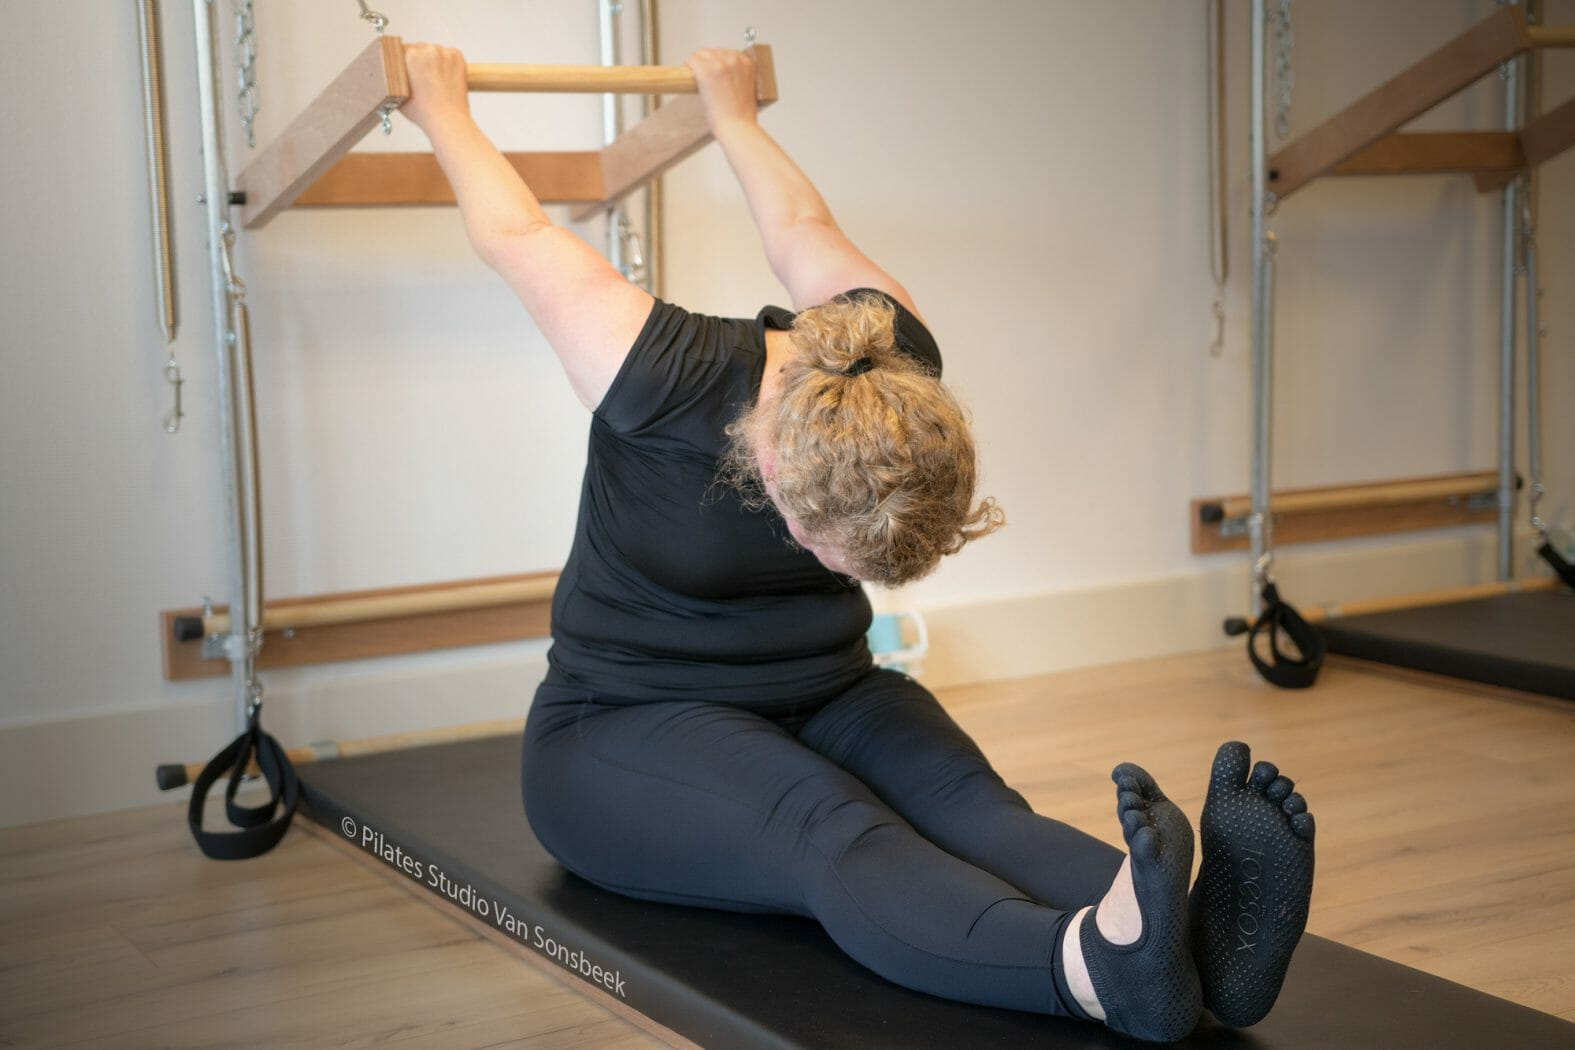 Reverse Push Through bij Pilates Studio Van Sonsbeek